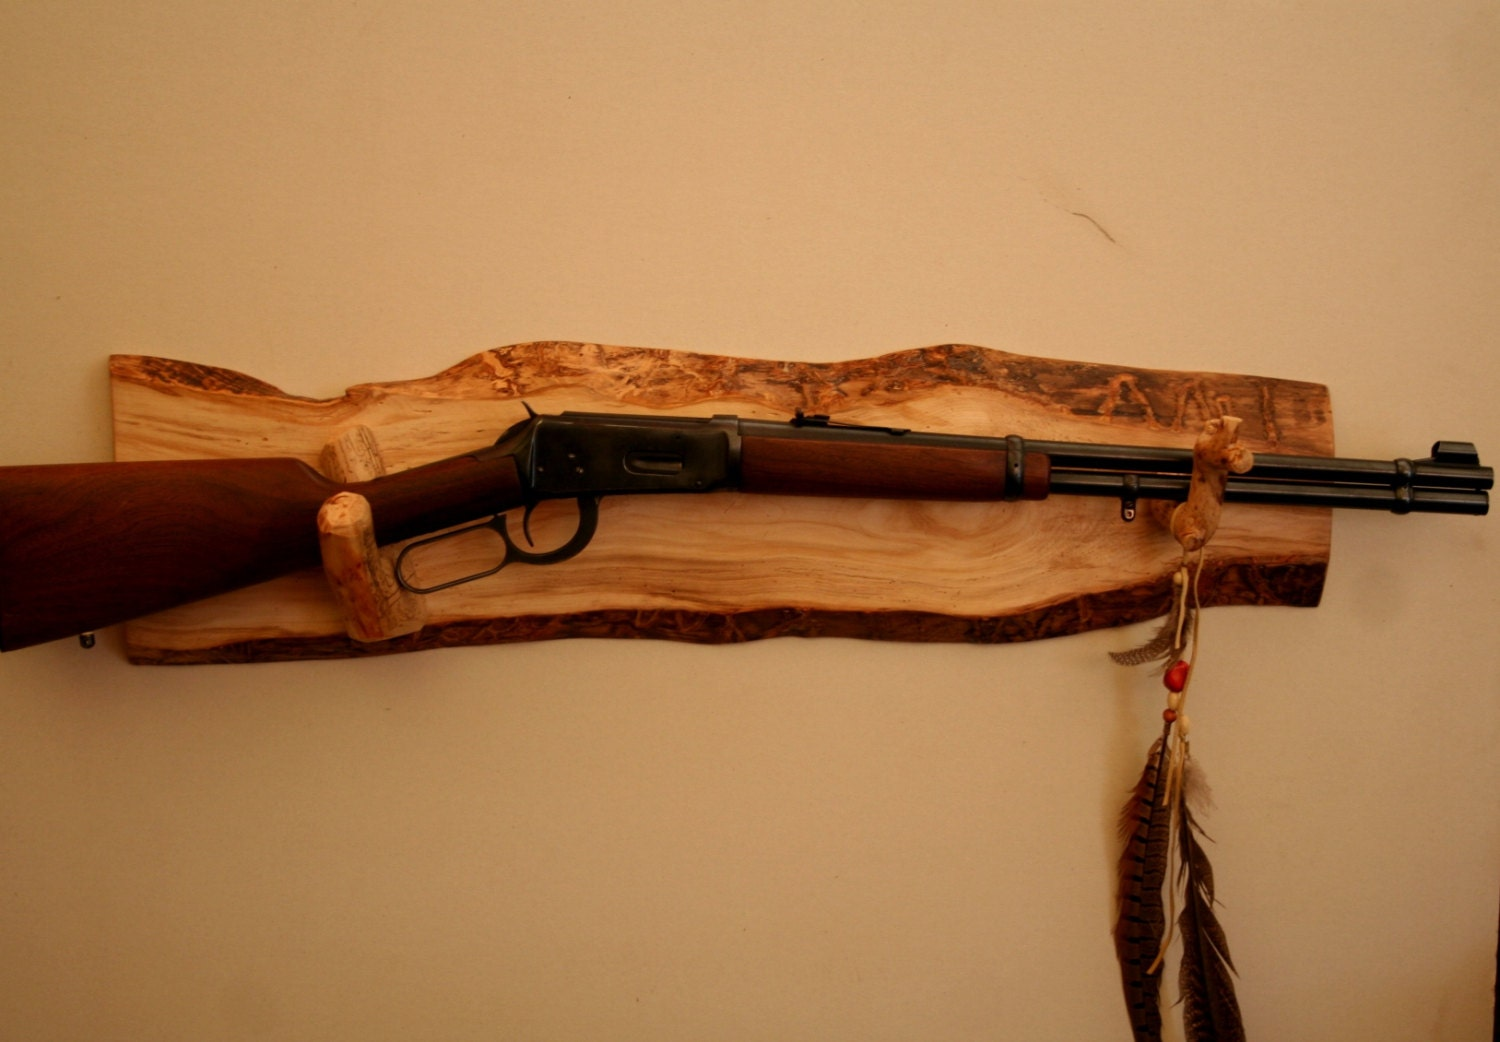 Long Gun Display Rack A57 Aspen With Pine By Rockymtnliving